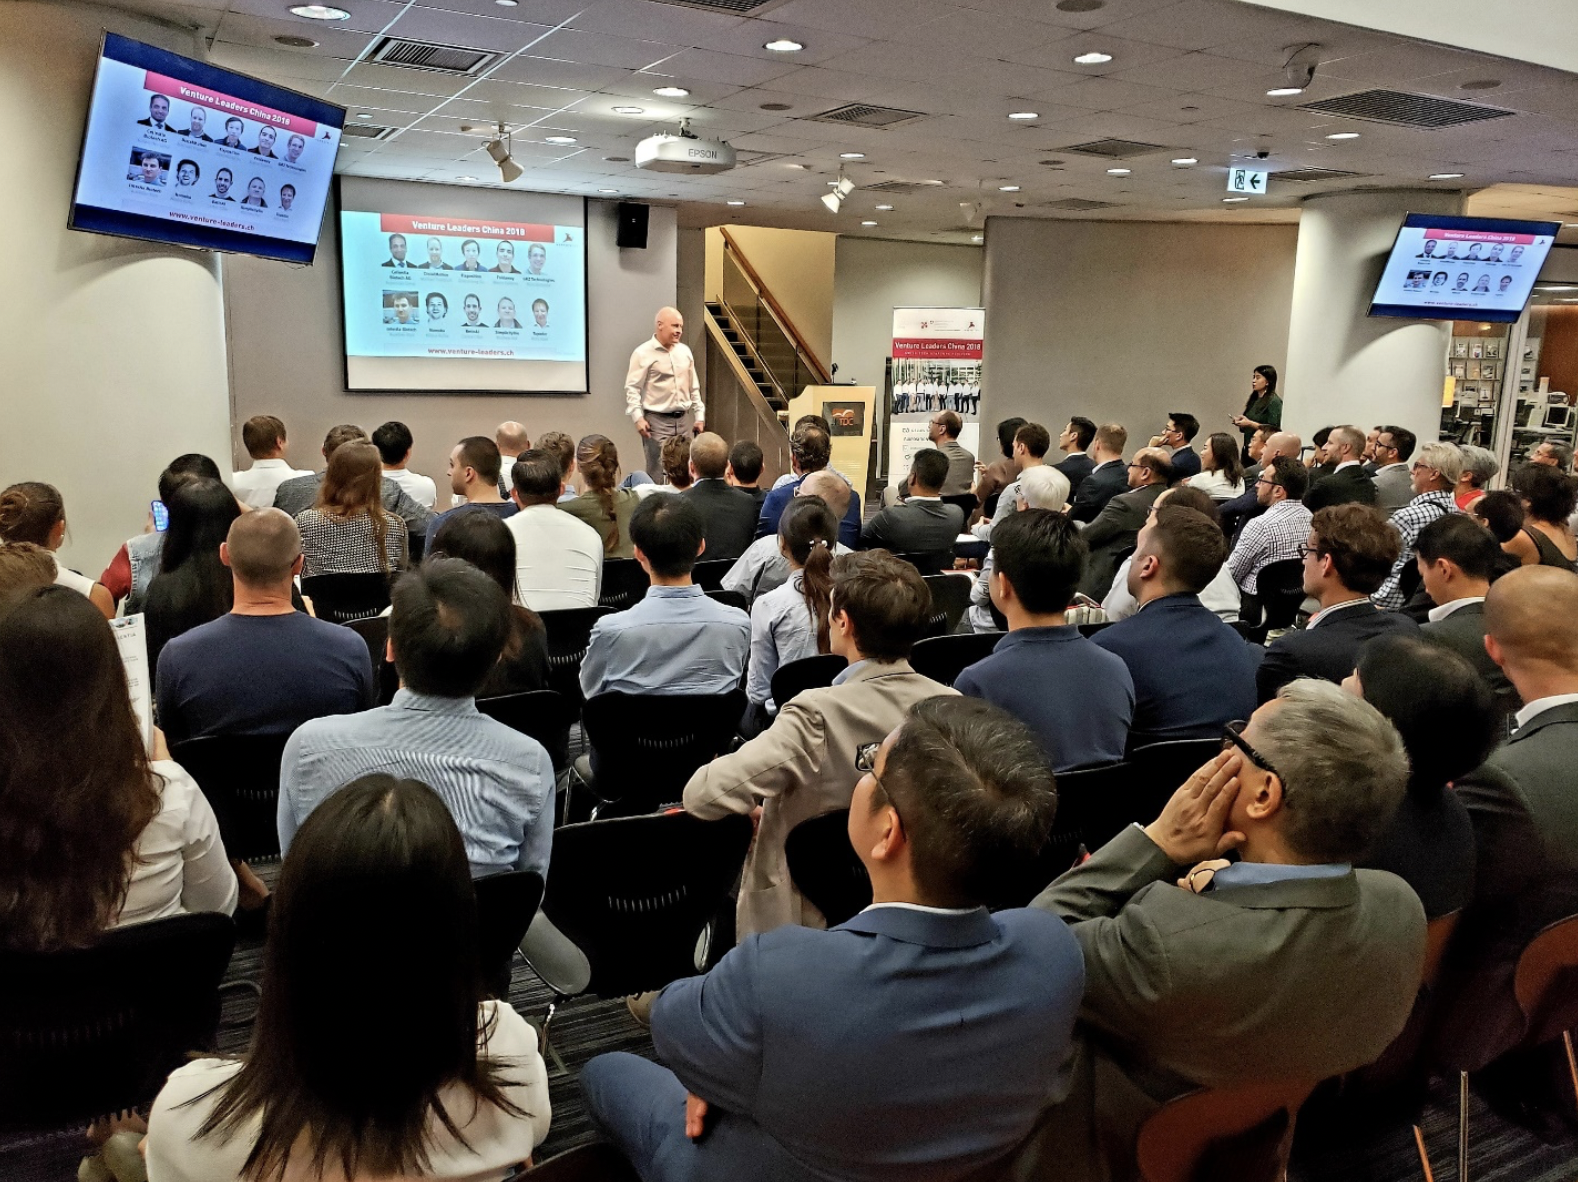 Pitching in Hong Kong in front of an audience of over 100 people